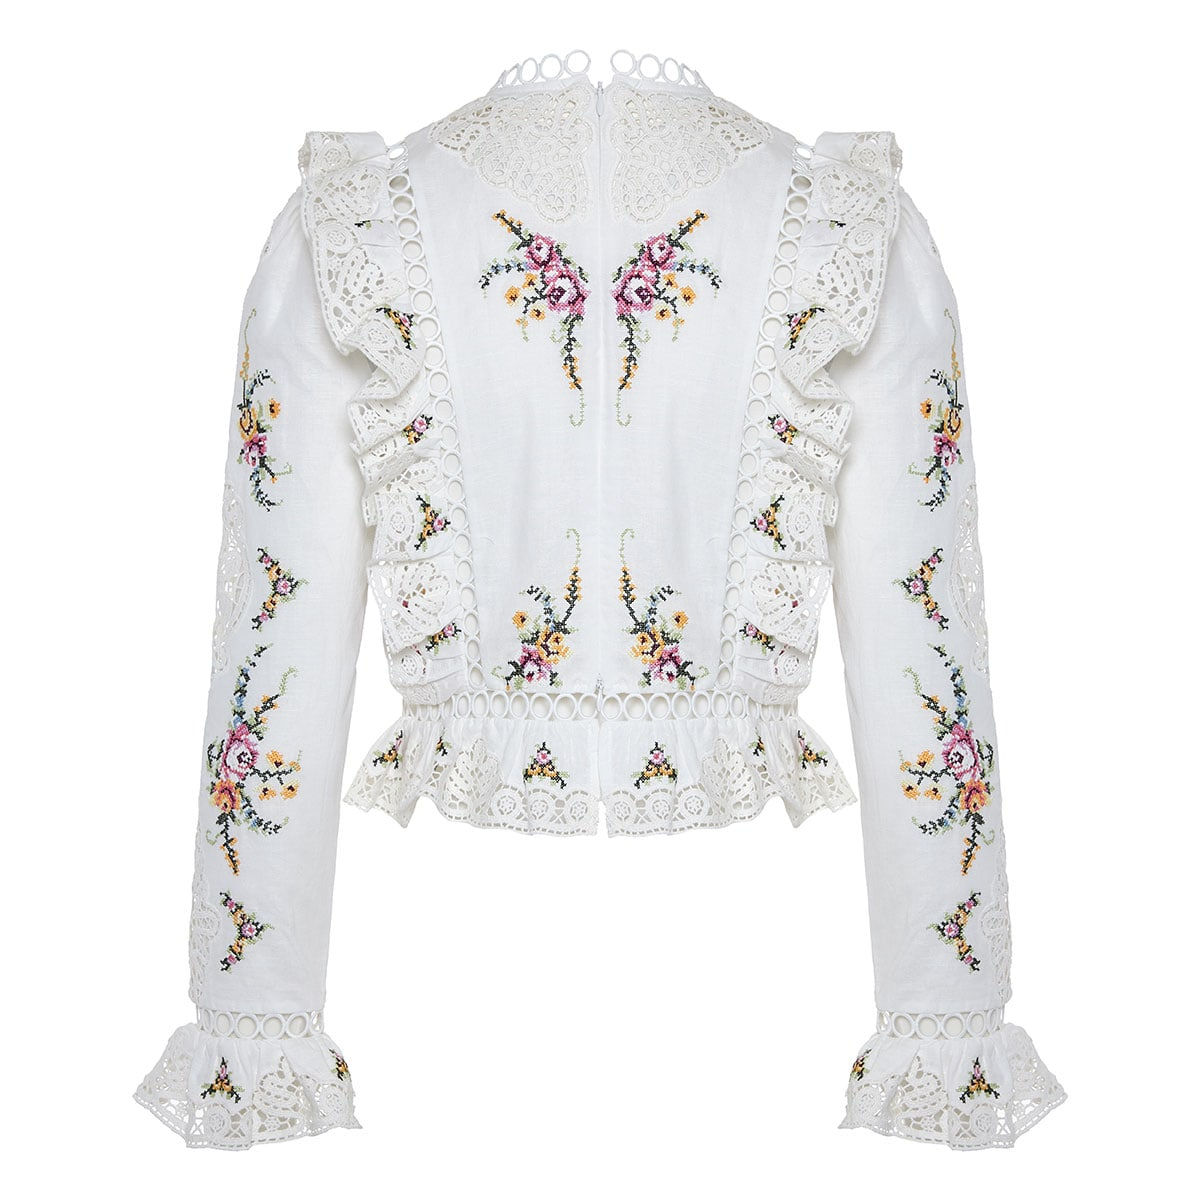 Allia embroidered ruffle-trimmed blouse